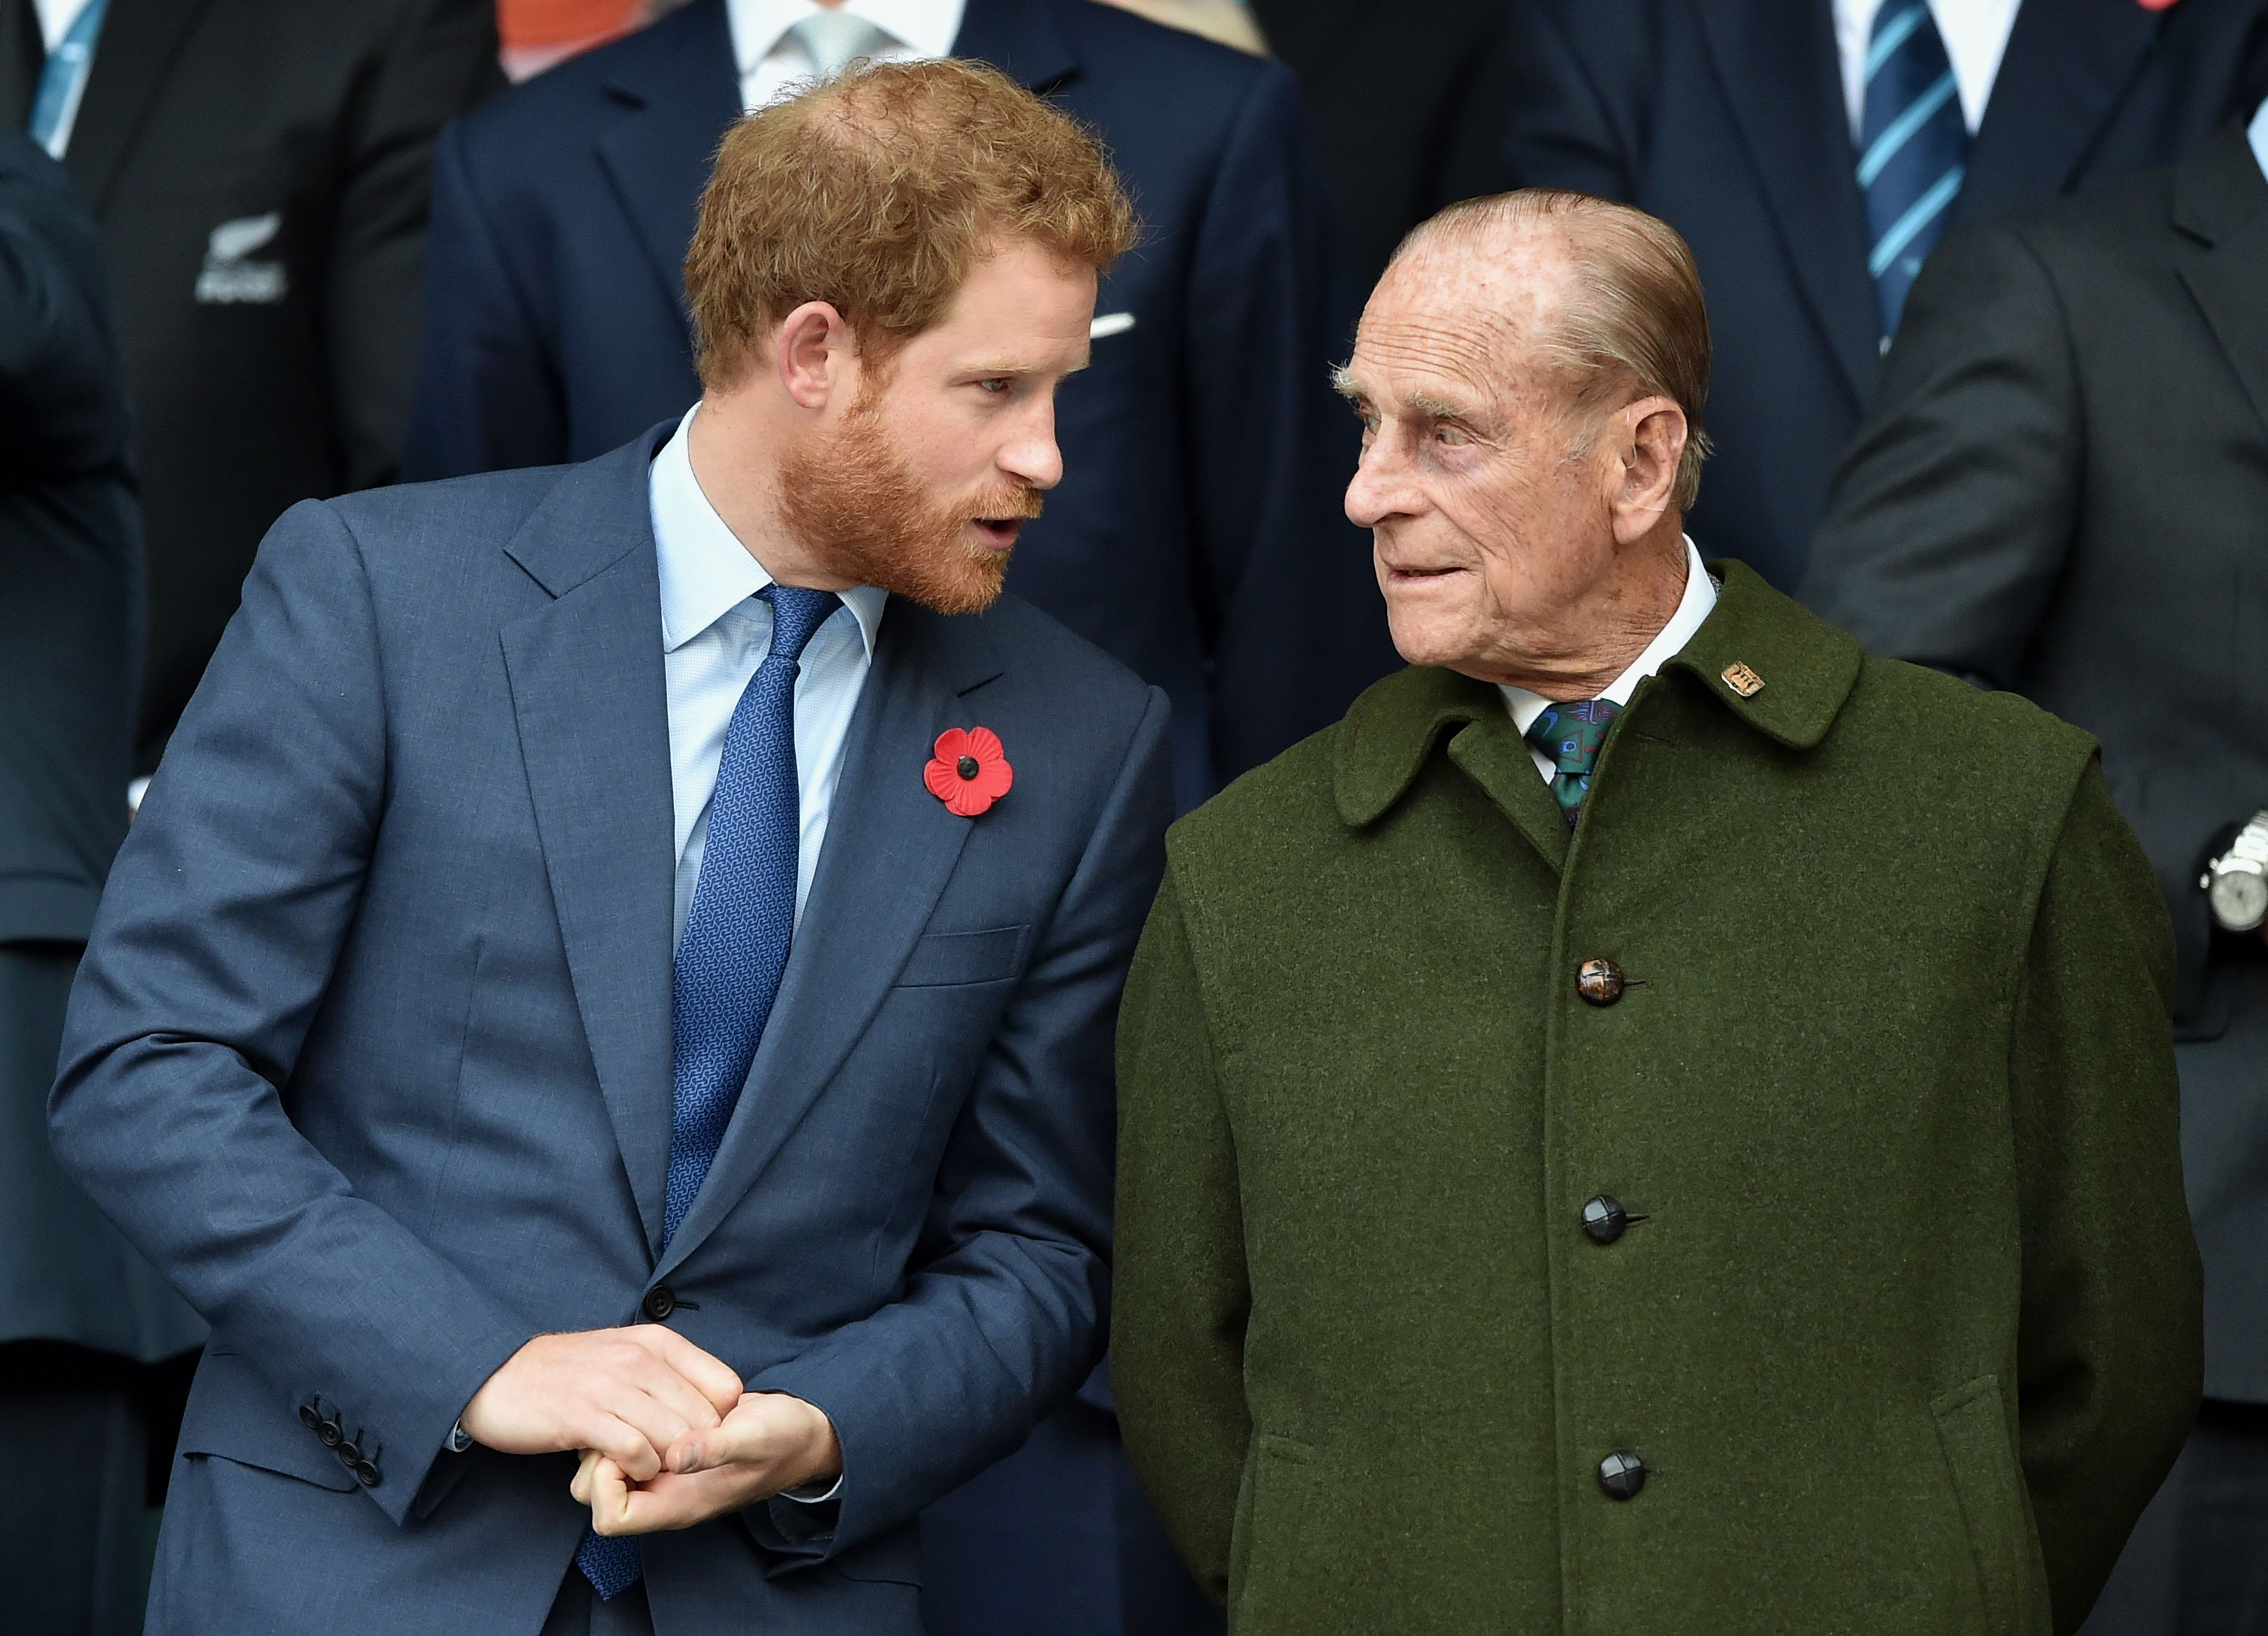 Prince Harry and Prince Philip, Duke of Edinburgh at the 2015 Rugby World Cup Final match between New Zealand and Australia at Twickenham Stadium in London, England | Photo: Max Mumby/Pool/Indigo/Getty Images